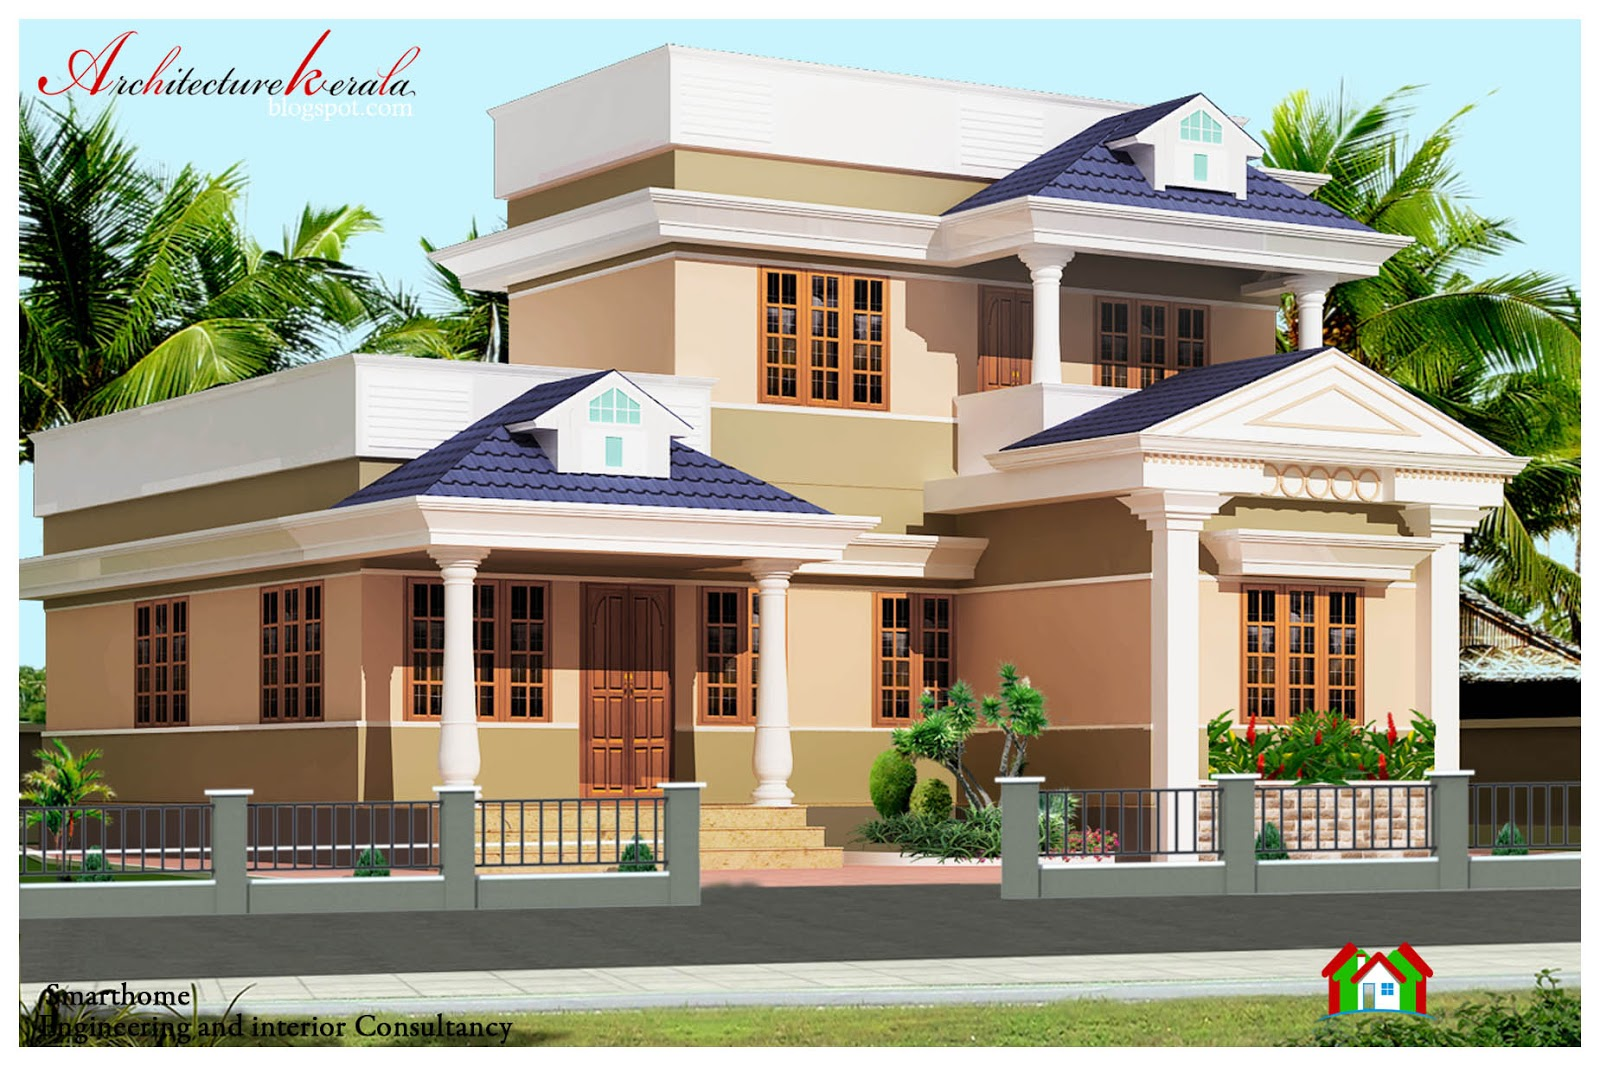 Architecture kerala 1000 sq ft kerala style house plan for Home designs kerala photos